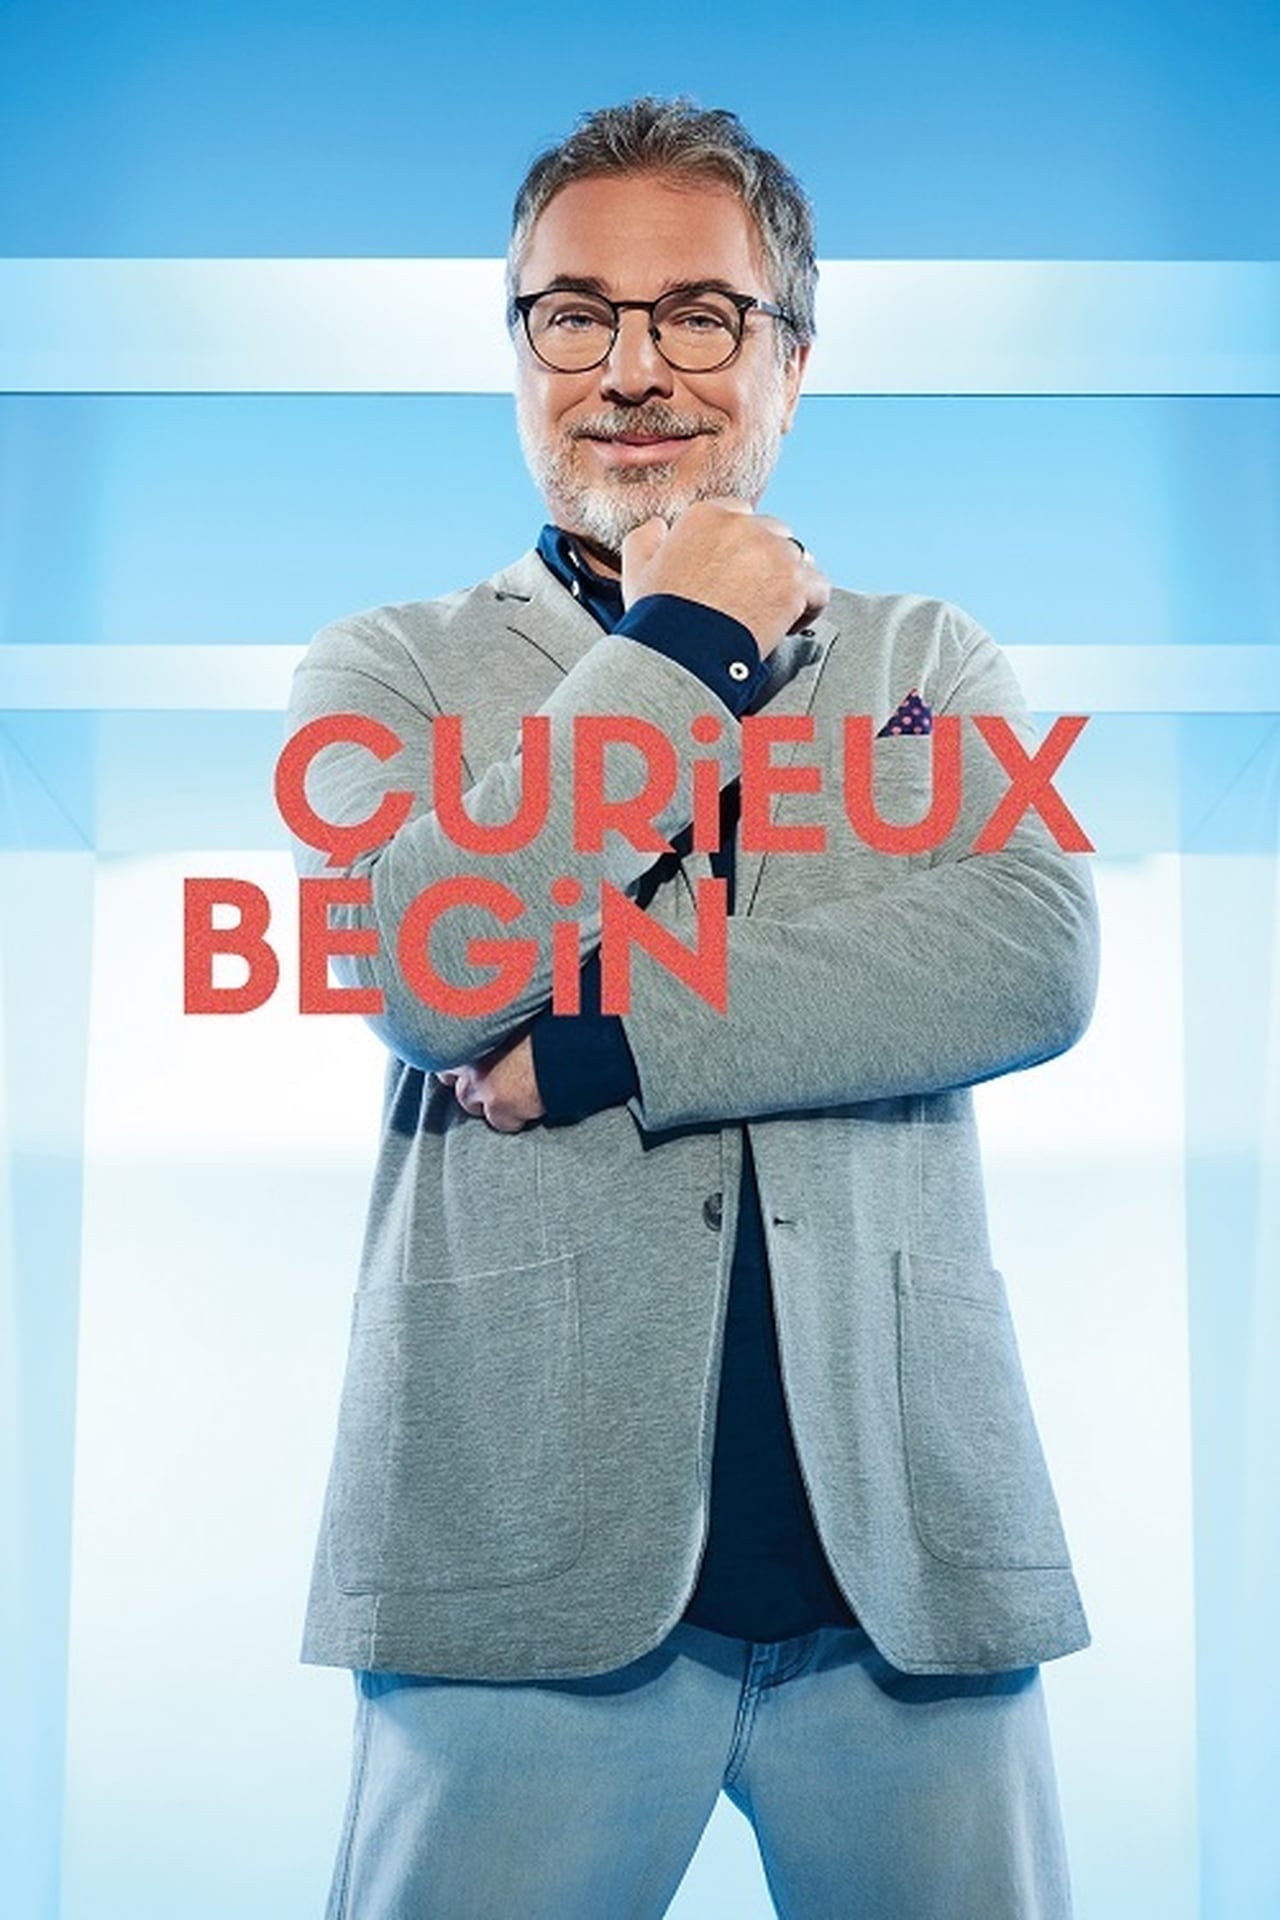 Putlocker Curieux Bégin Season 3 (2010)